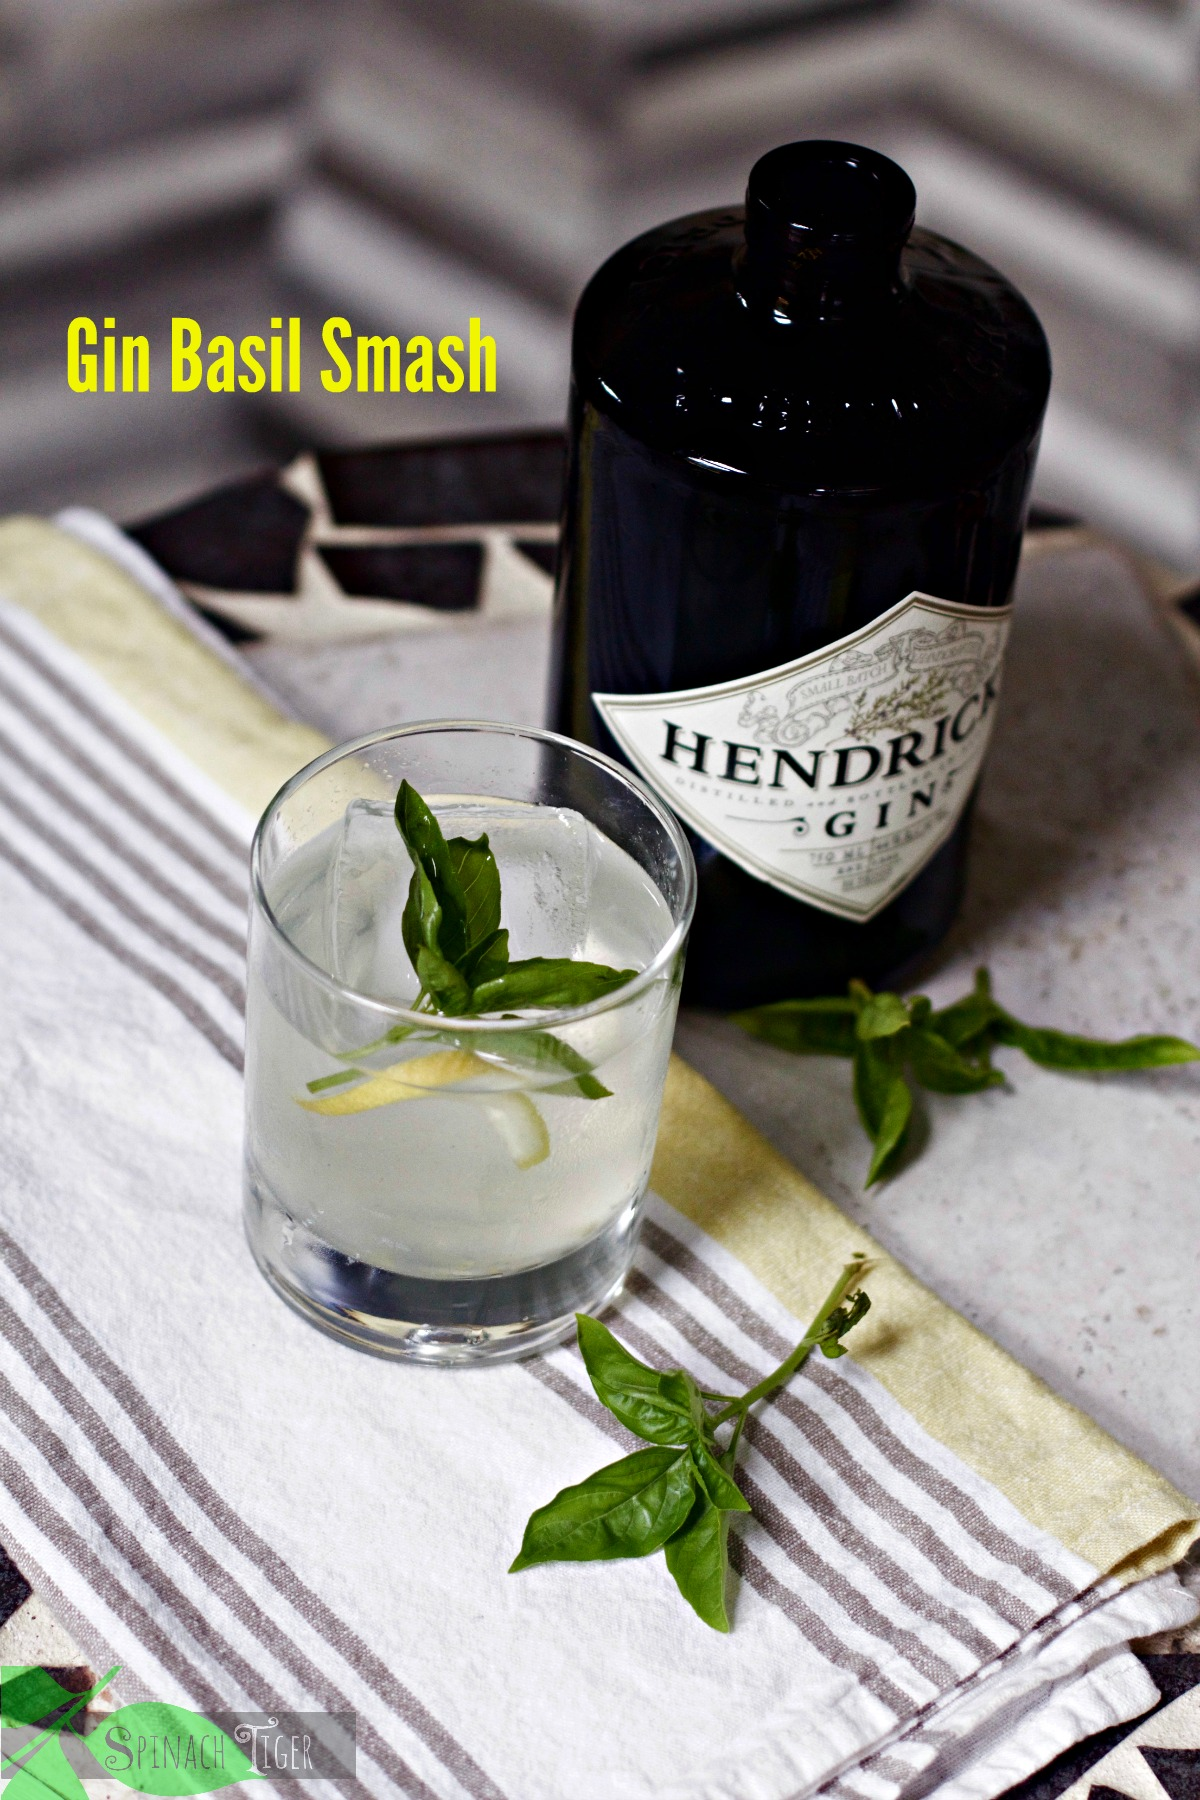 Summer Cocktails: Gin Basil Smash from Spinach Tiger